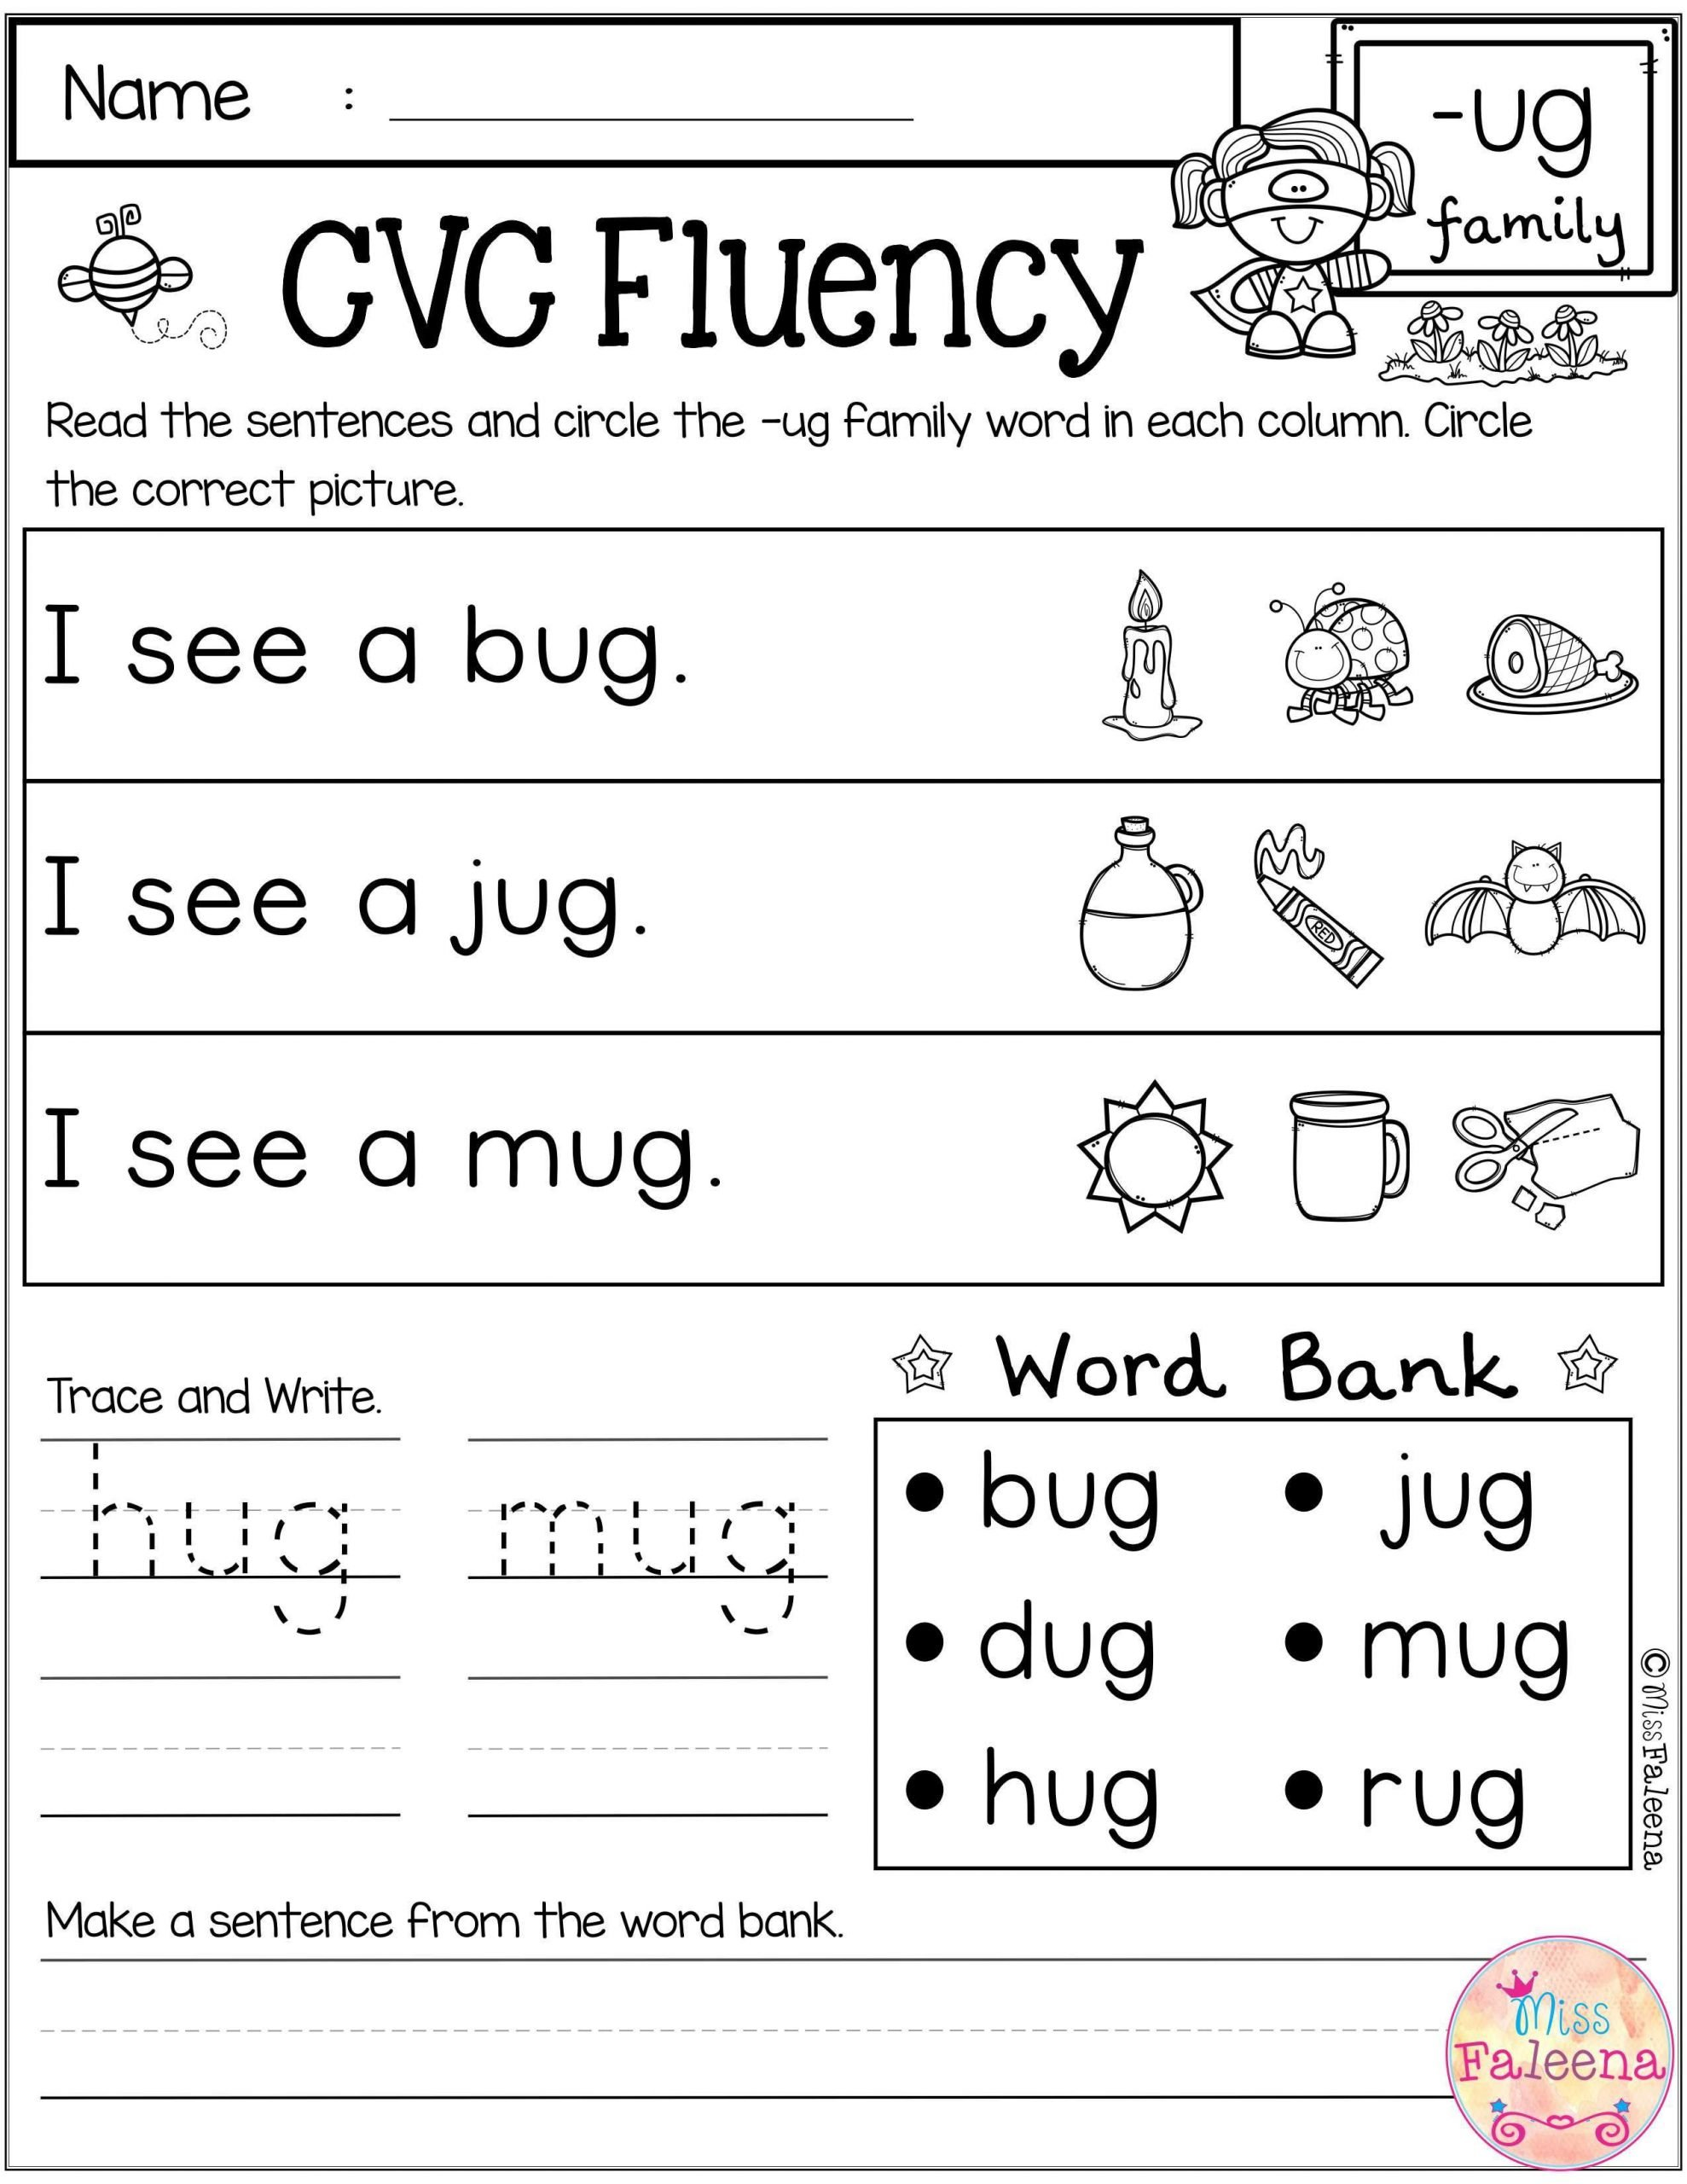 Cvc Words Worksheet Kindergarten Cvc Fluency Has 30 Pages Of Cvc Worksheets these Worksheets